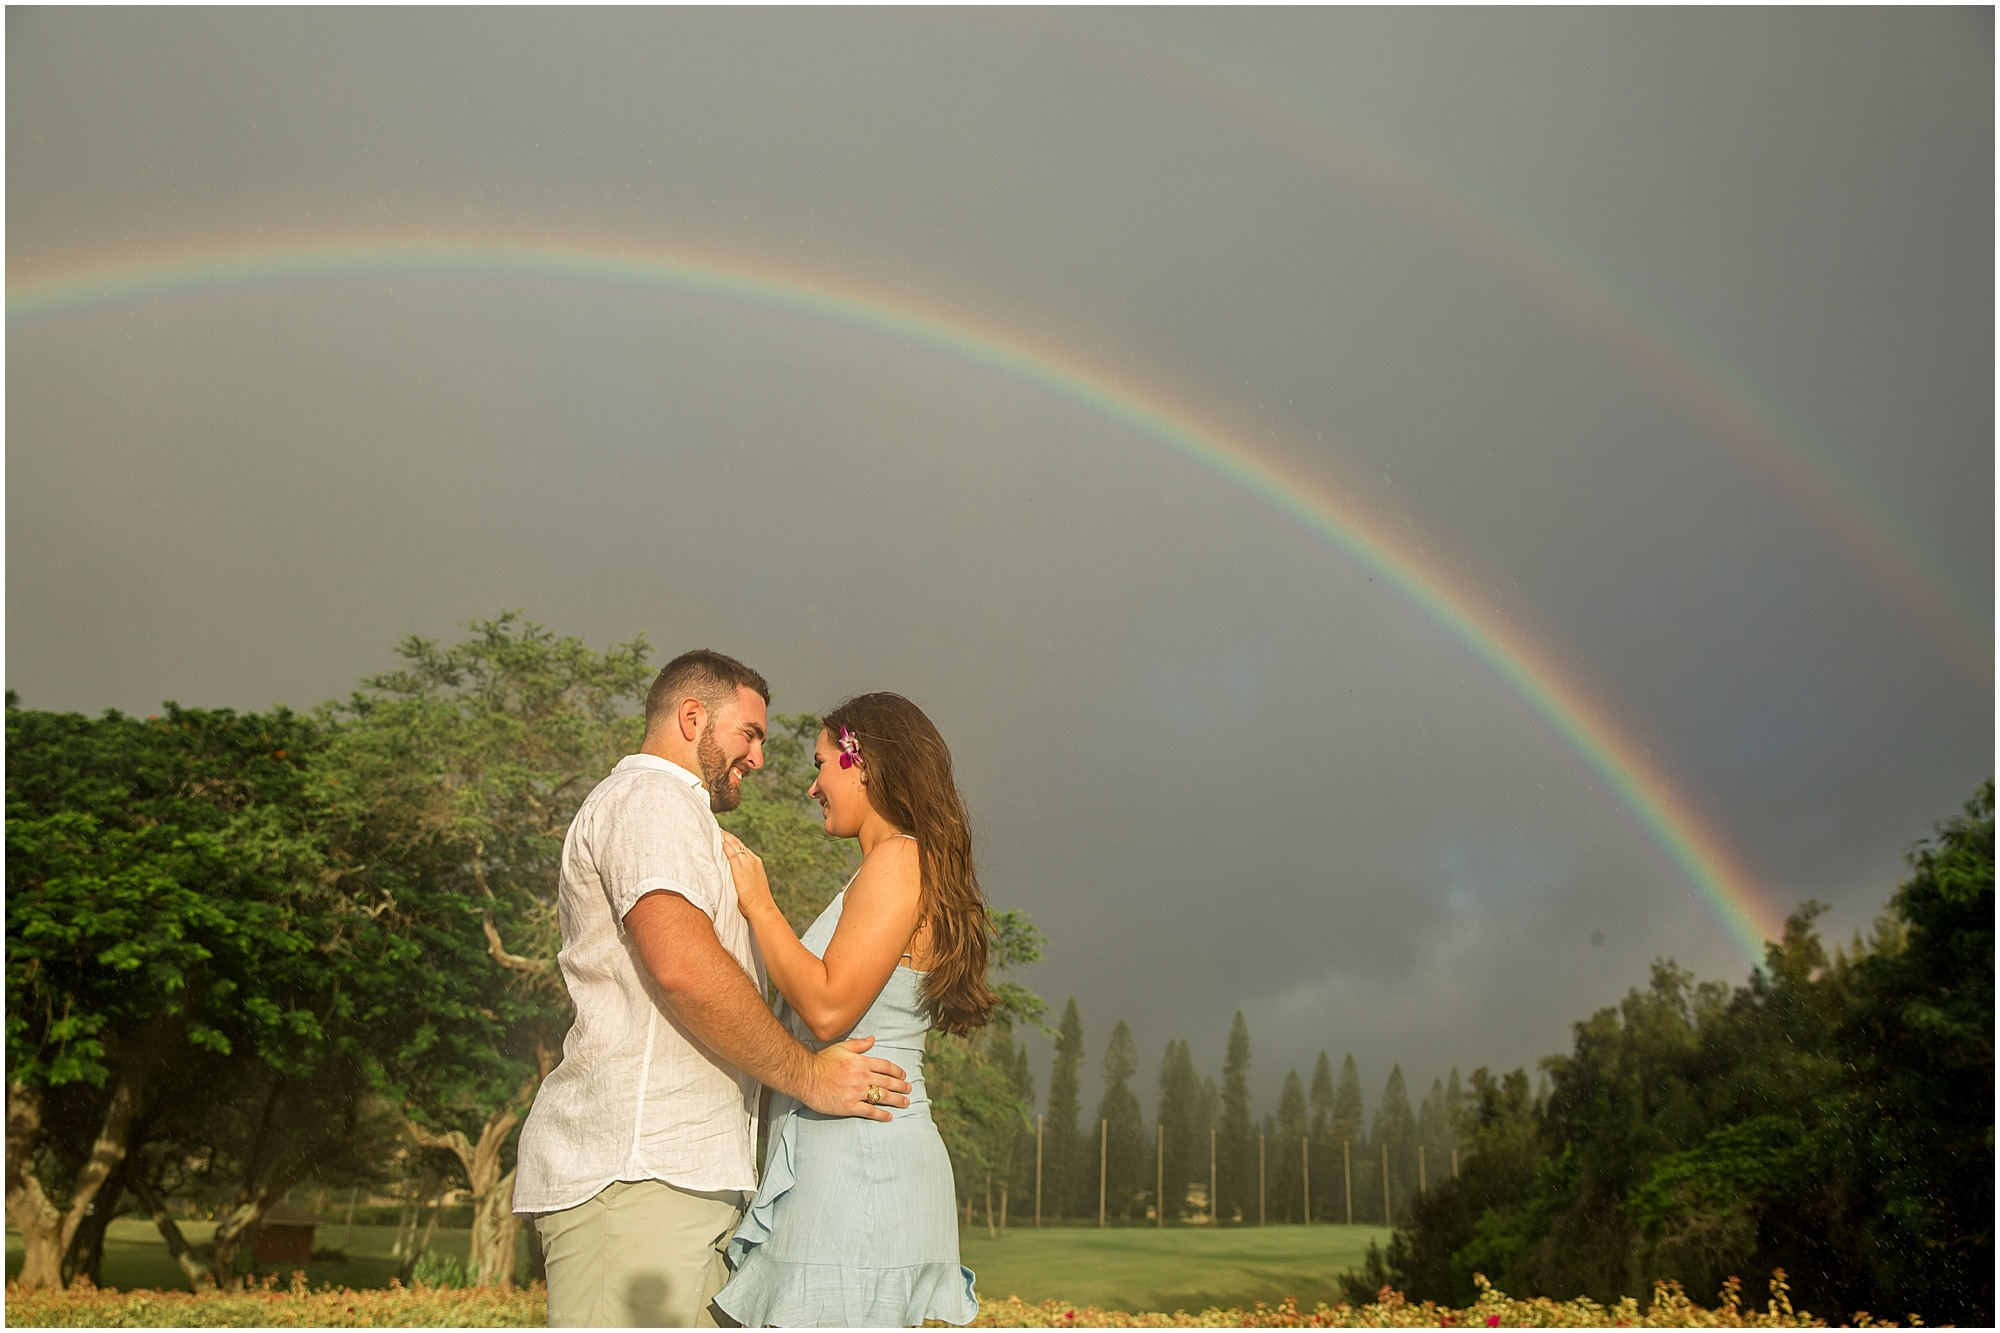 A double rainbow showed up during this Maui engagement session